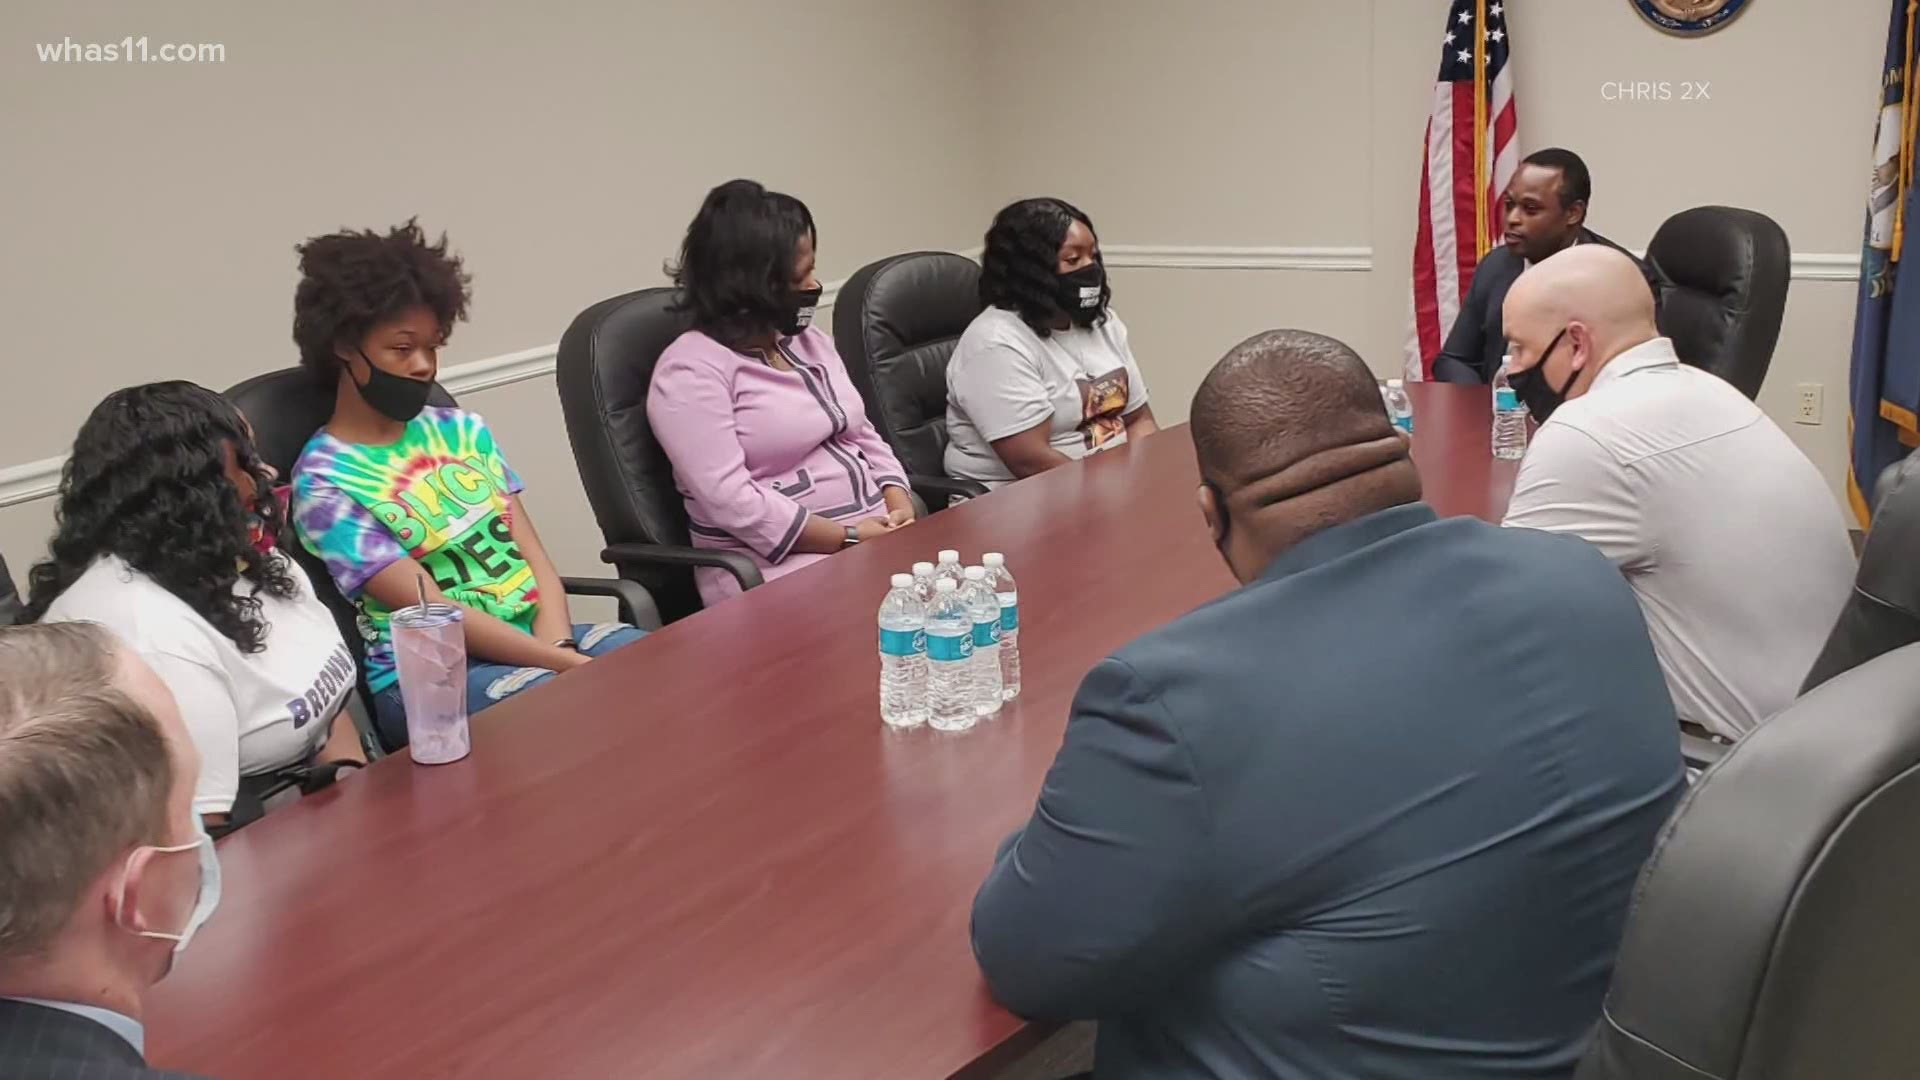 Kentucky Attorney General Meets With Breonna Taylor's Family For The 1st Time [VIDEO]